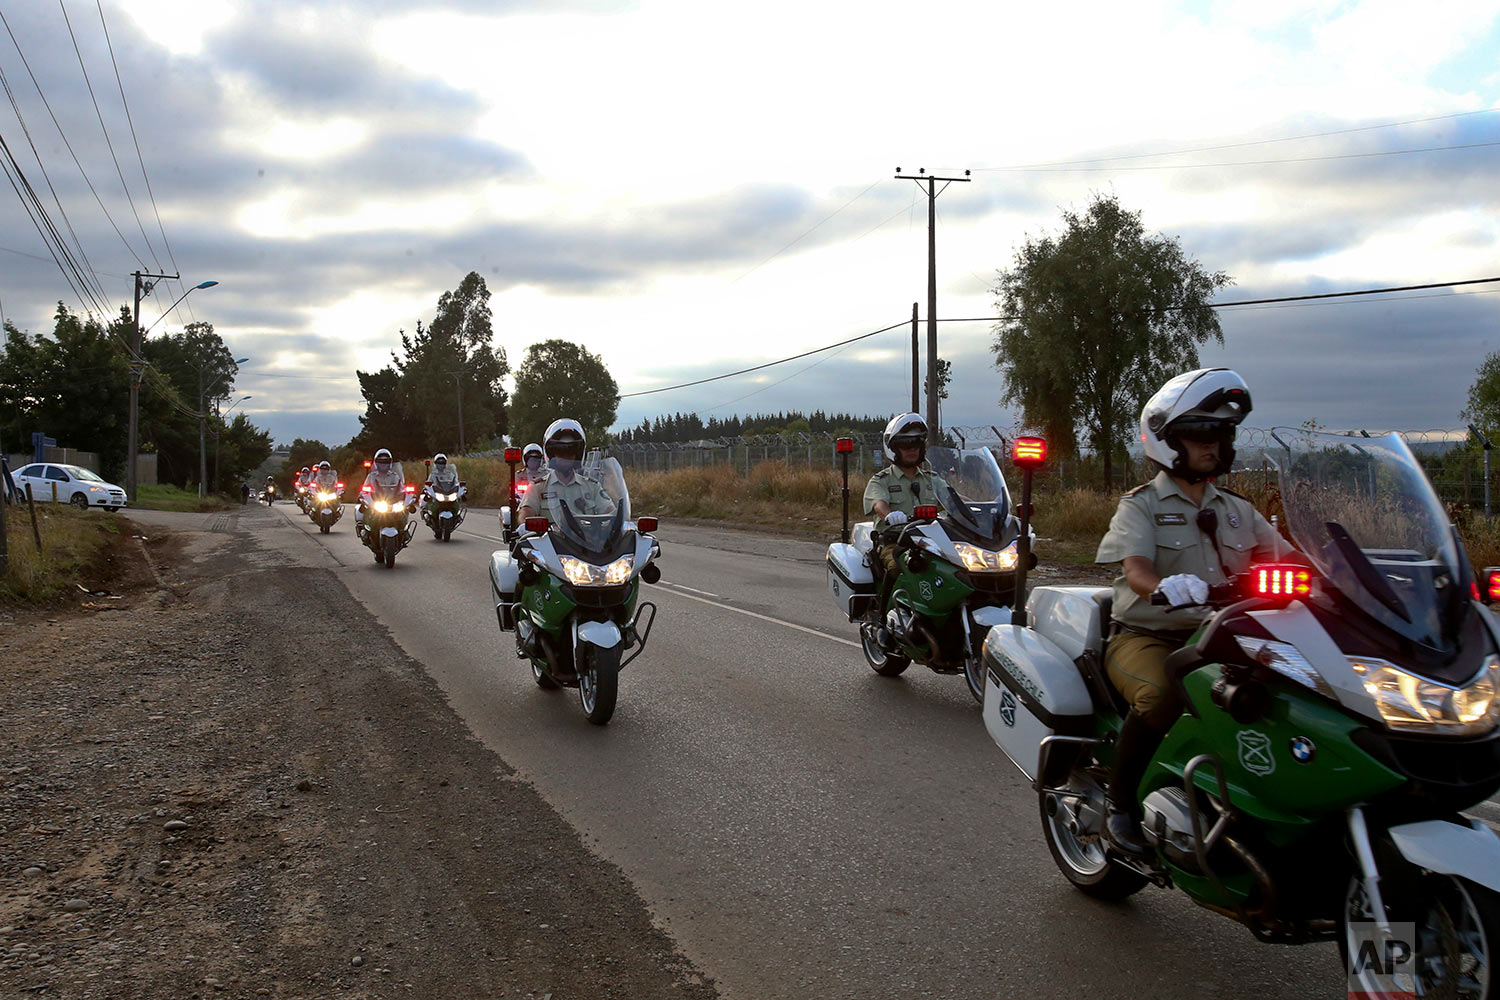 In this Monday, Jan. 8, 2018 photo, Chilean police drive past the Maquehue Air Base, the air base where Pope Francis will celebrate Mass in Temuco, Chile. Chilean authorities plan to deploy more than 4,000 police officers in Temuco's streets. Flanked by 16 police vehicles, Francis will ride in the pope mobile down a central avenue before visiting an order of nuns. (AP Photo/Esteban Felix) | See these photos on AP Images